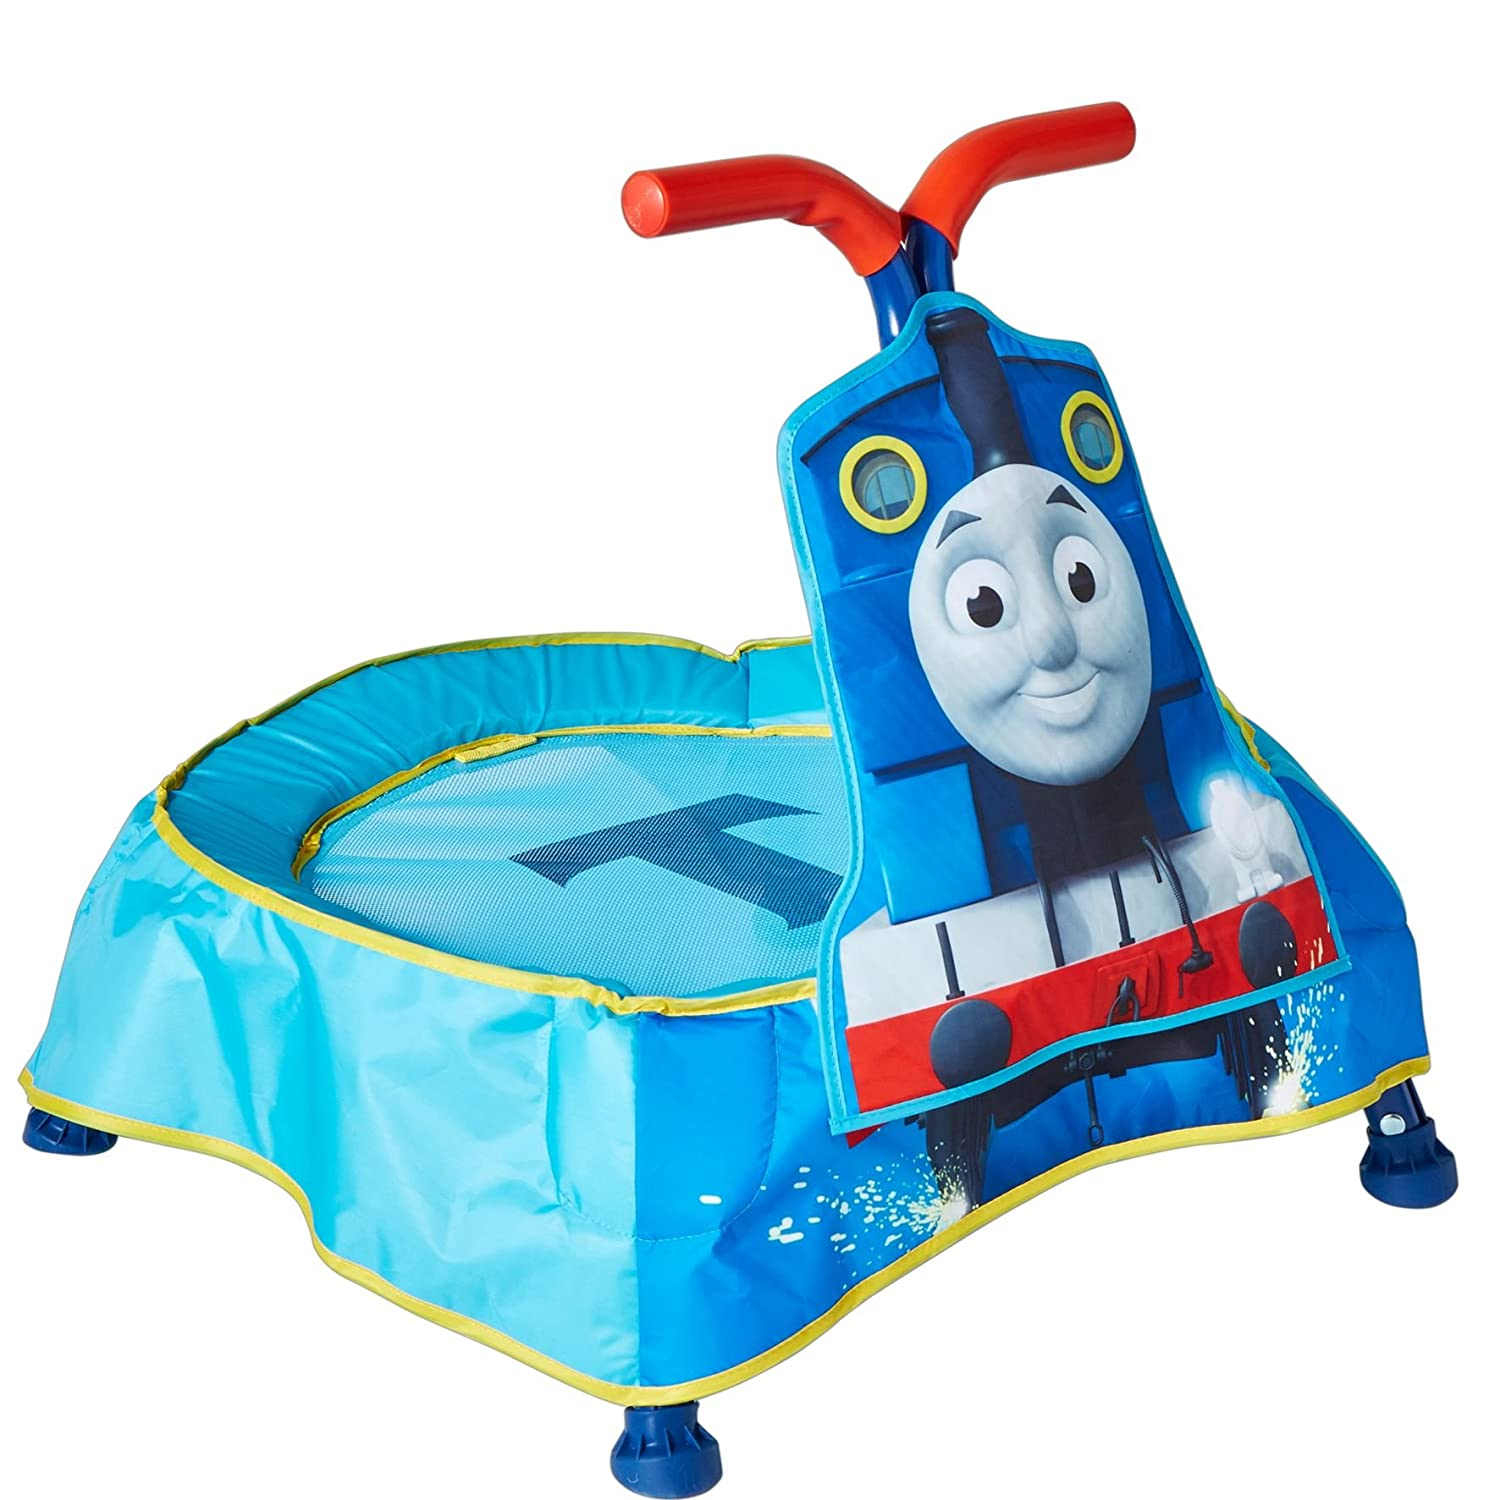 Worlds Apart Thomas the Tank Engine Indoor Childrens Toddler Trampoline by KidActive 303THT